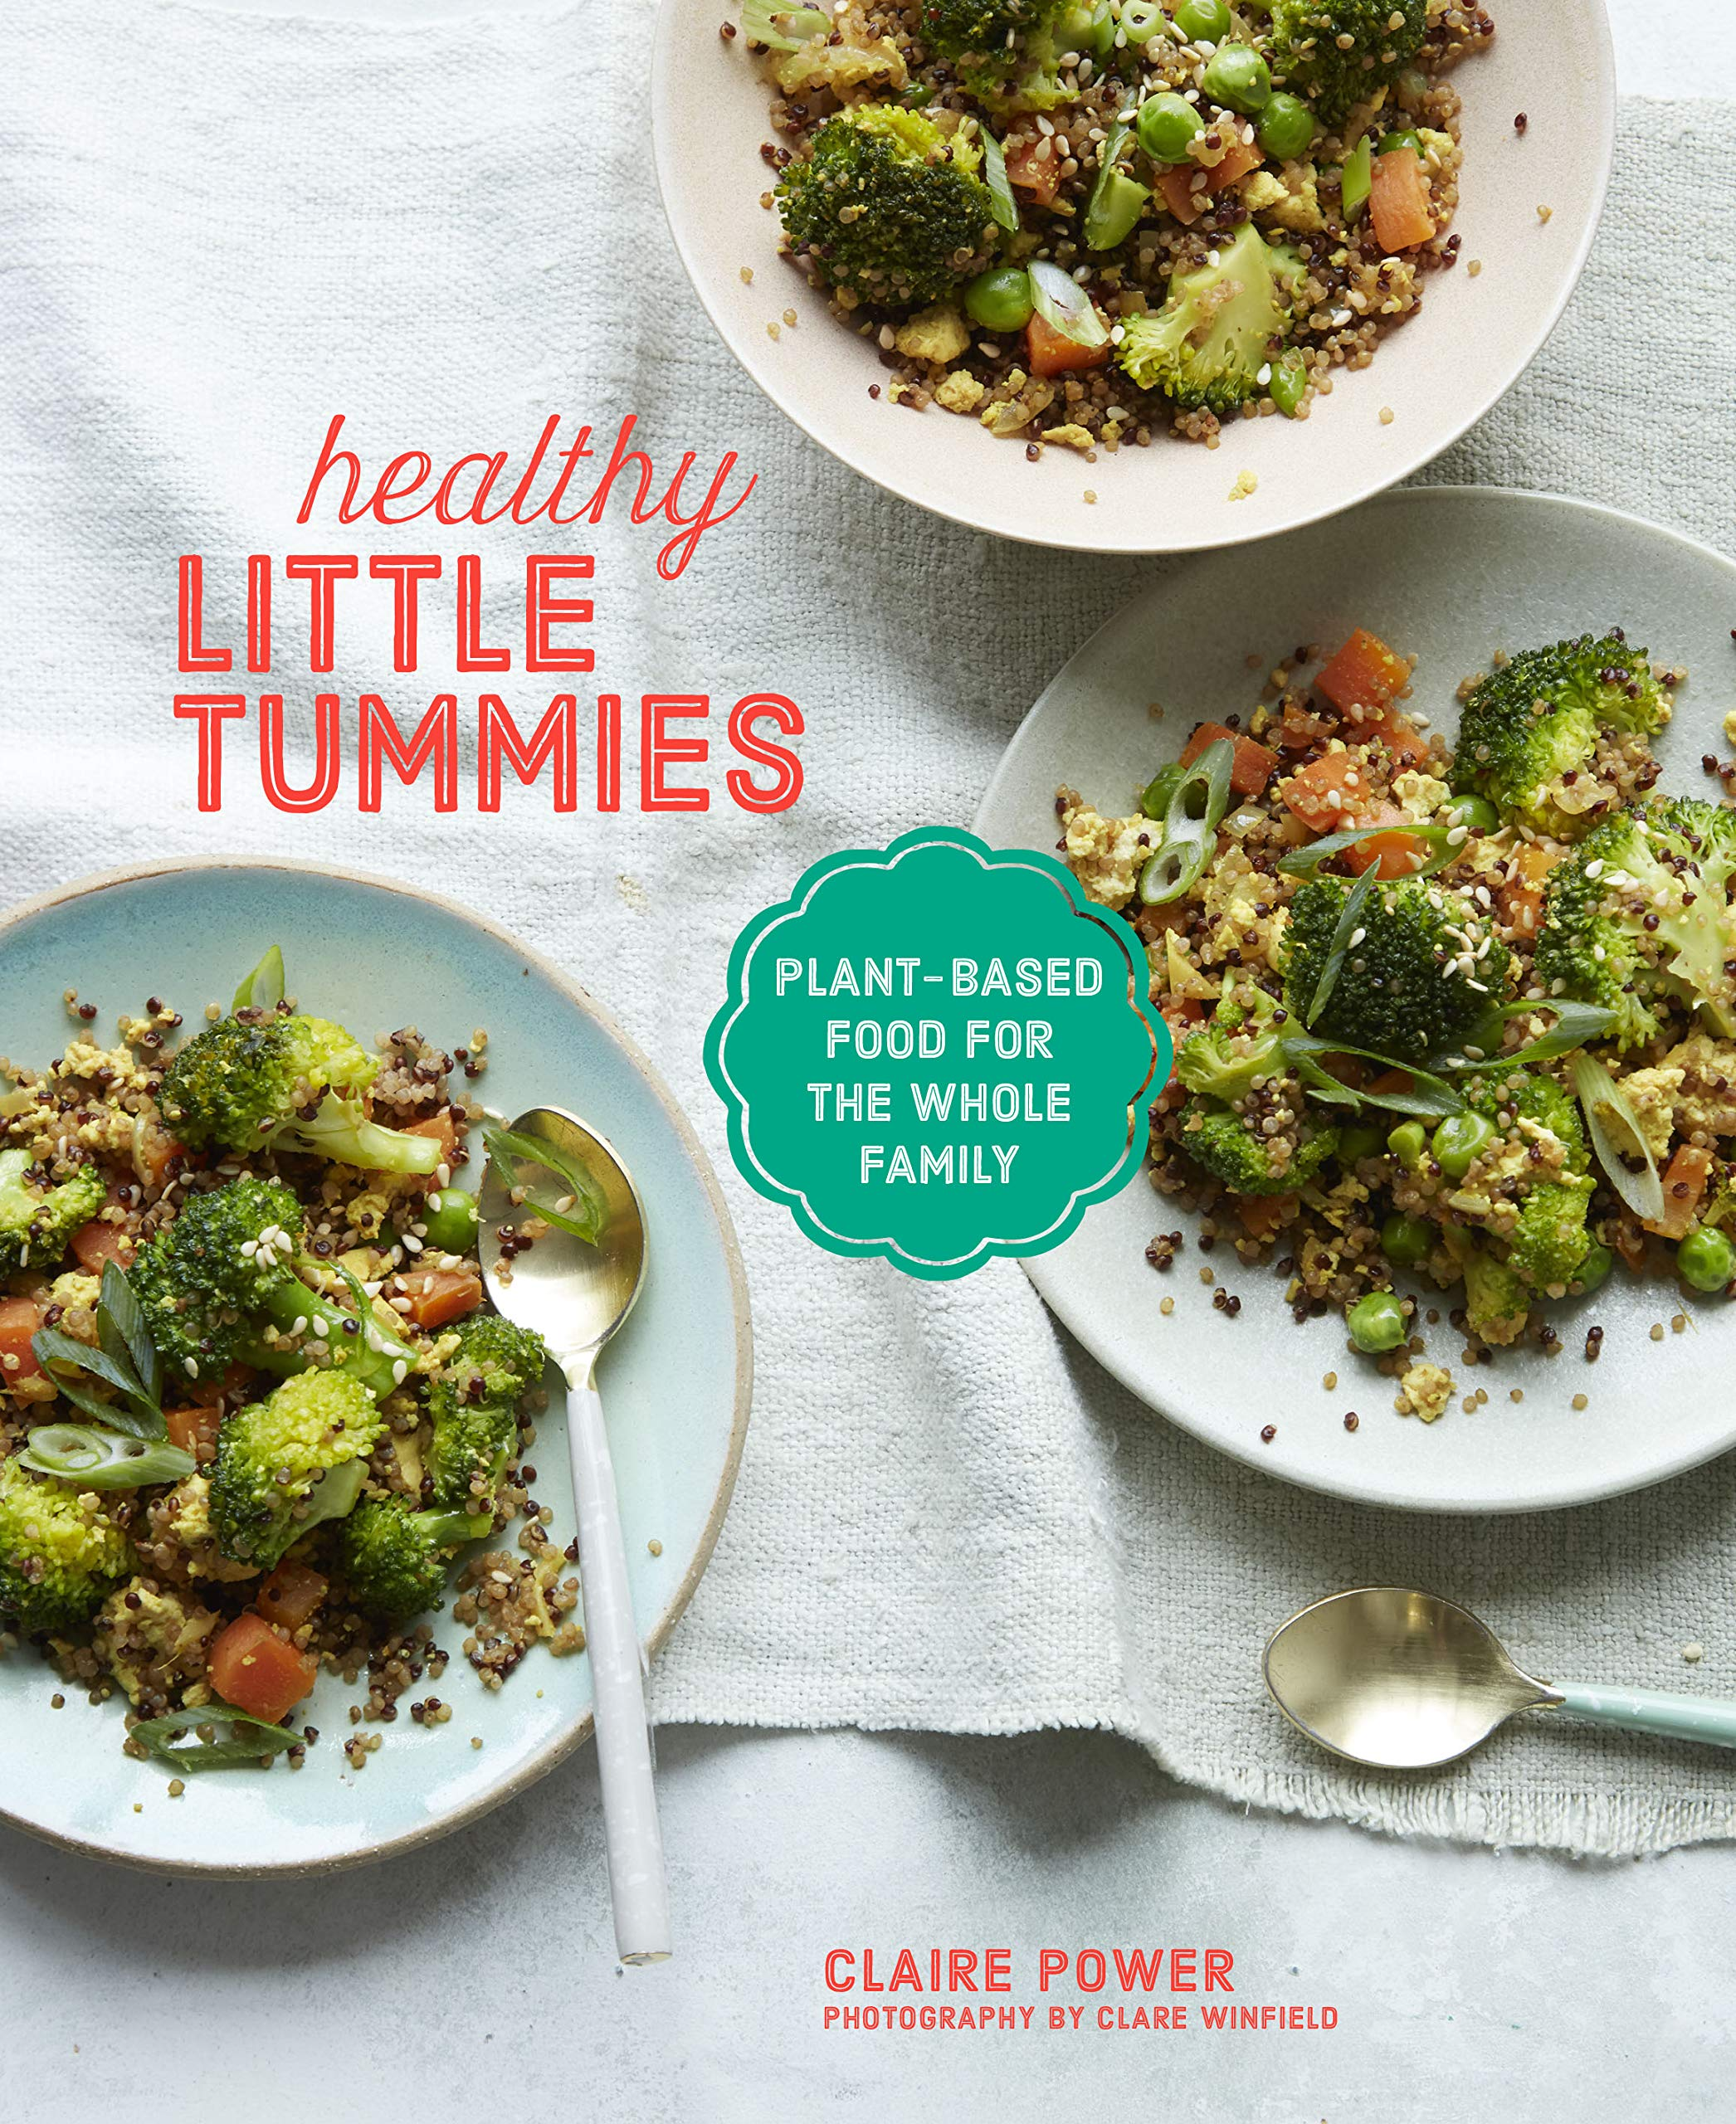 Healthy Little Tummies: Plant-based food for the whole family 1